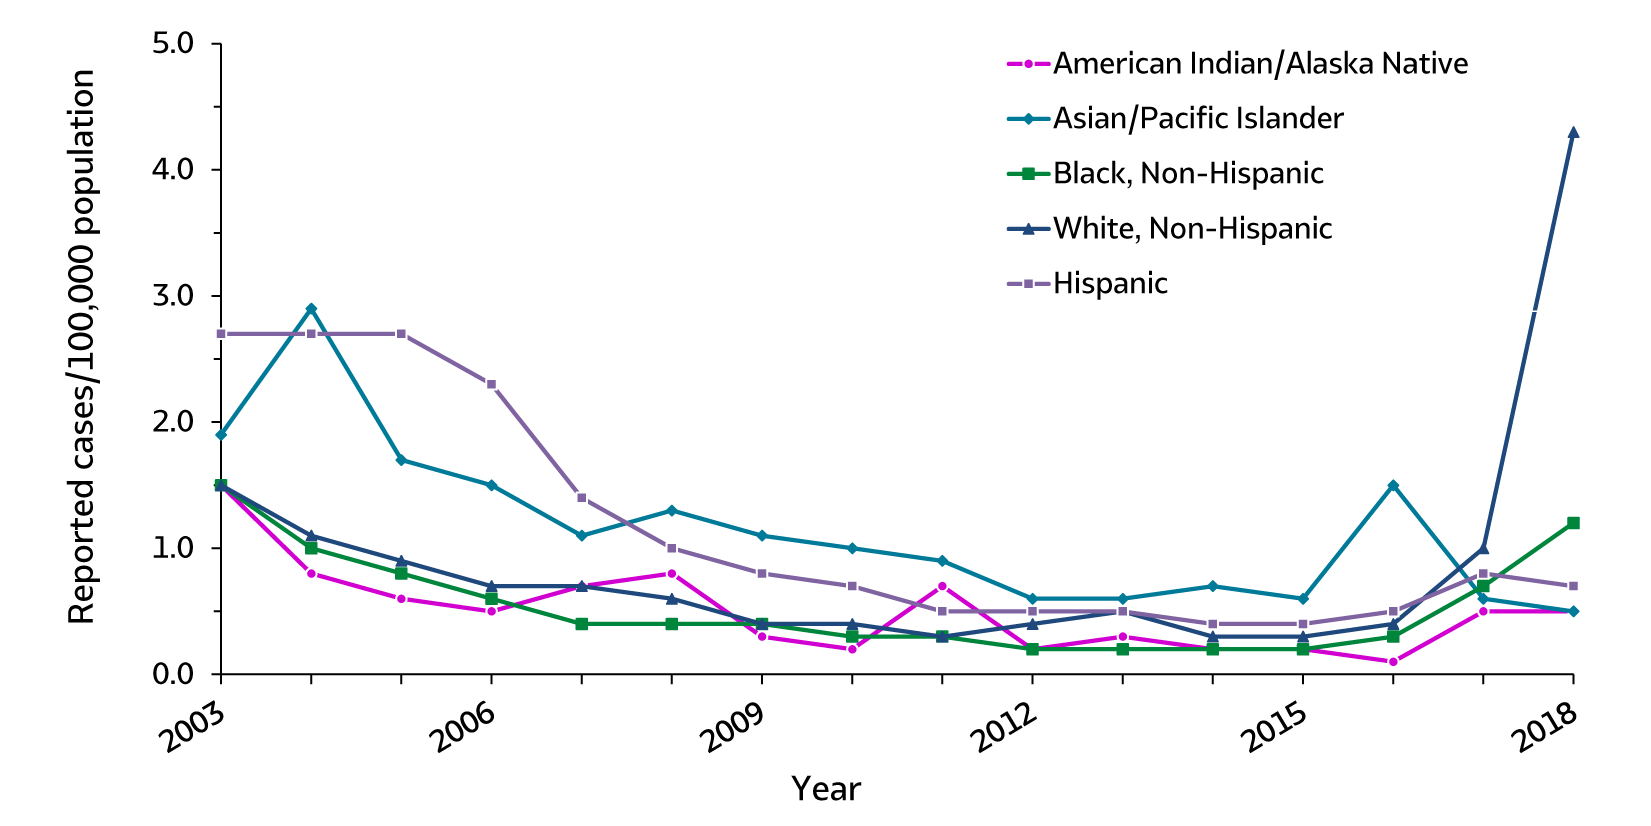 Figure 1.6.  The line graph shows rates of reported hepatitis A by race/ethnicity for 2003 through 2018. The race/ethnicity classifications are American Indian/Alaska Native, Asian/Pacific Islander, Black non-Hispanic, White non-Hispanic, and Hispanic. Rates for White, non-Hispanic and Black, non-Hispanic increased in 2018.  The largest increase was for White, non-Hispanics (330% increase).  Rates for American Indian/Alaska Natives remained constant and rates for Asian/Pacific Islanders and Hispanics decreased.